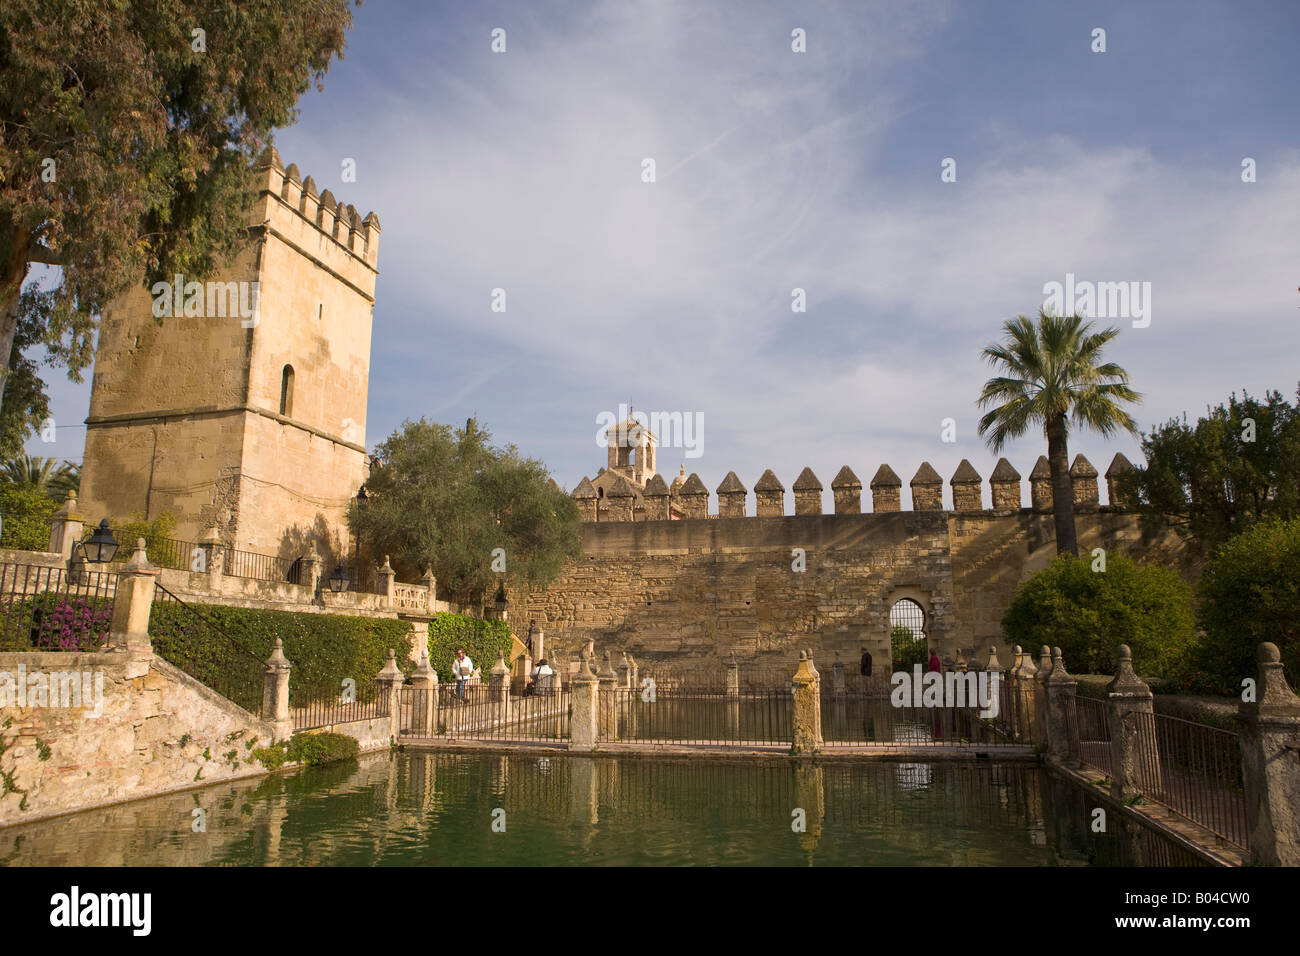 Walls and Towers of the Alcazar de los Reyes Cristianos (Castle of the Christian Monarchs) seen from the Gardens - Stock Image